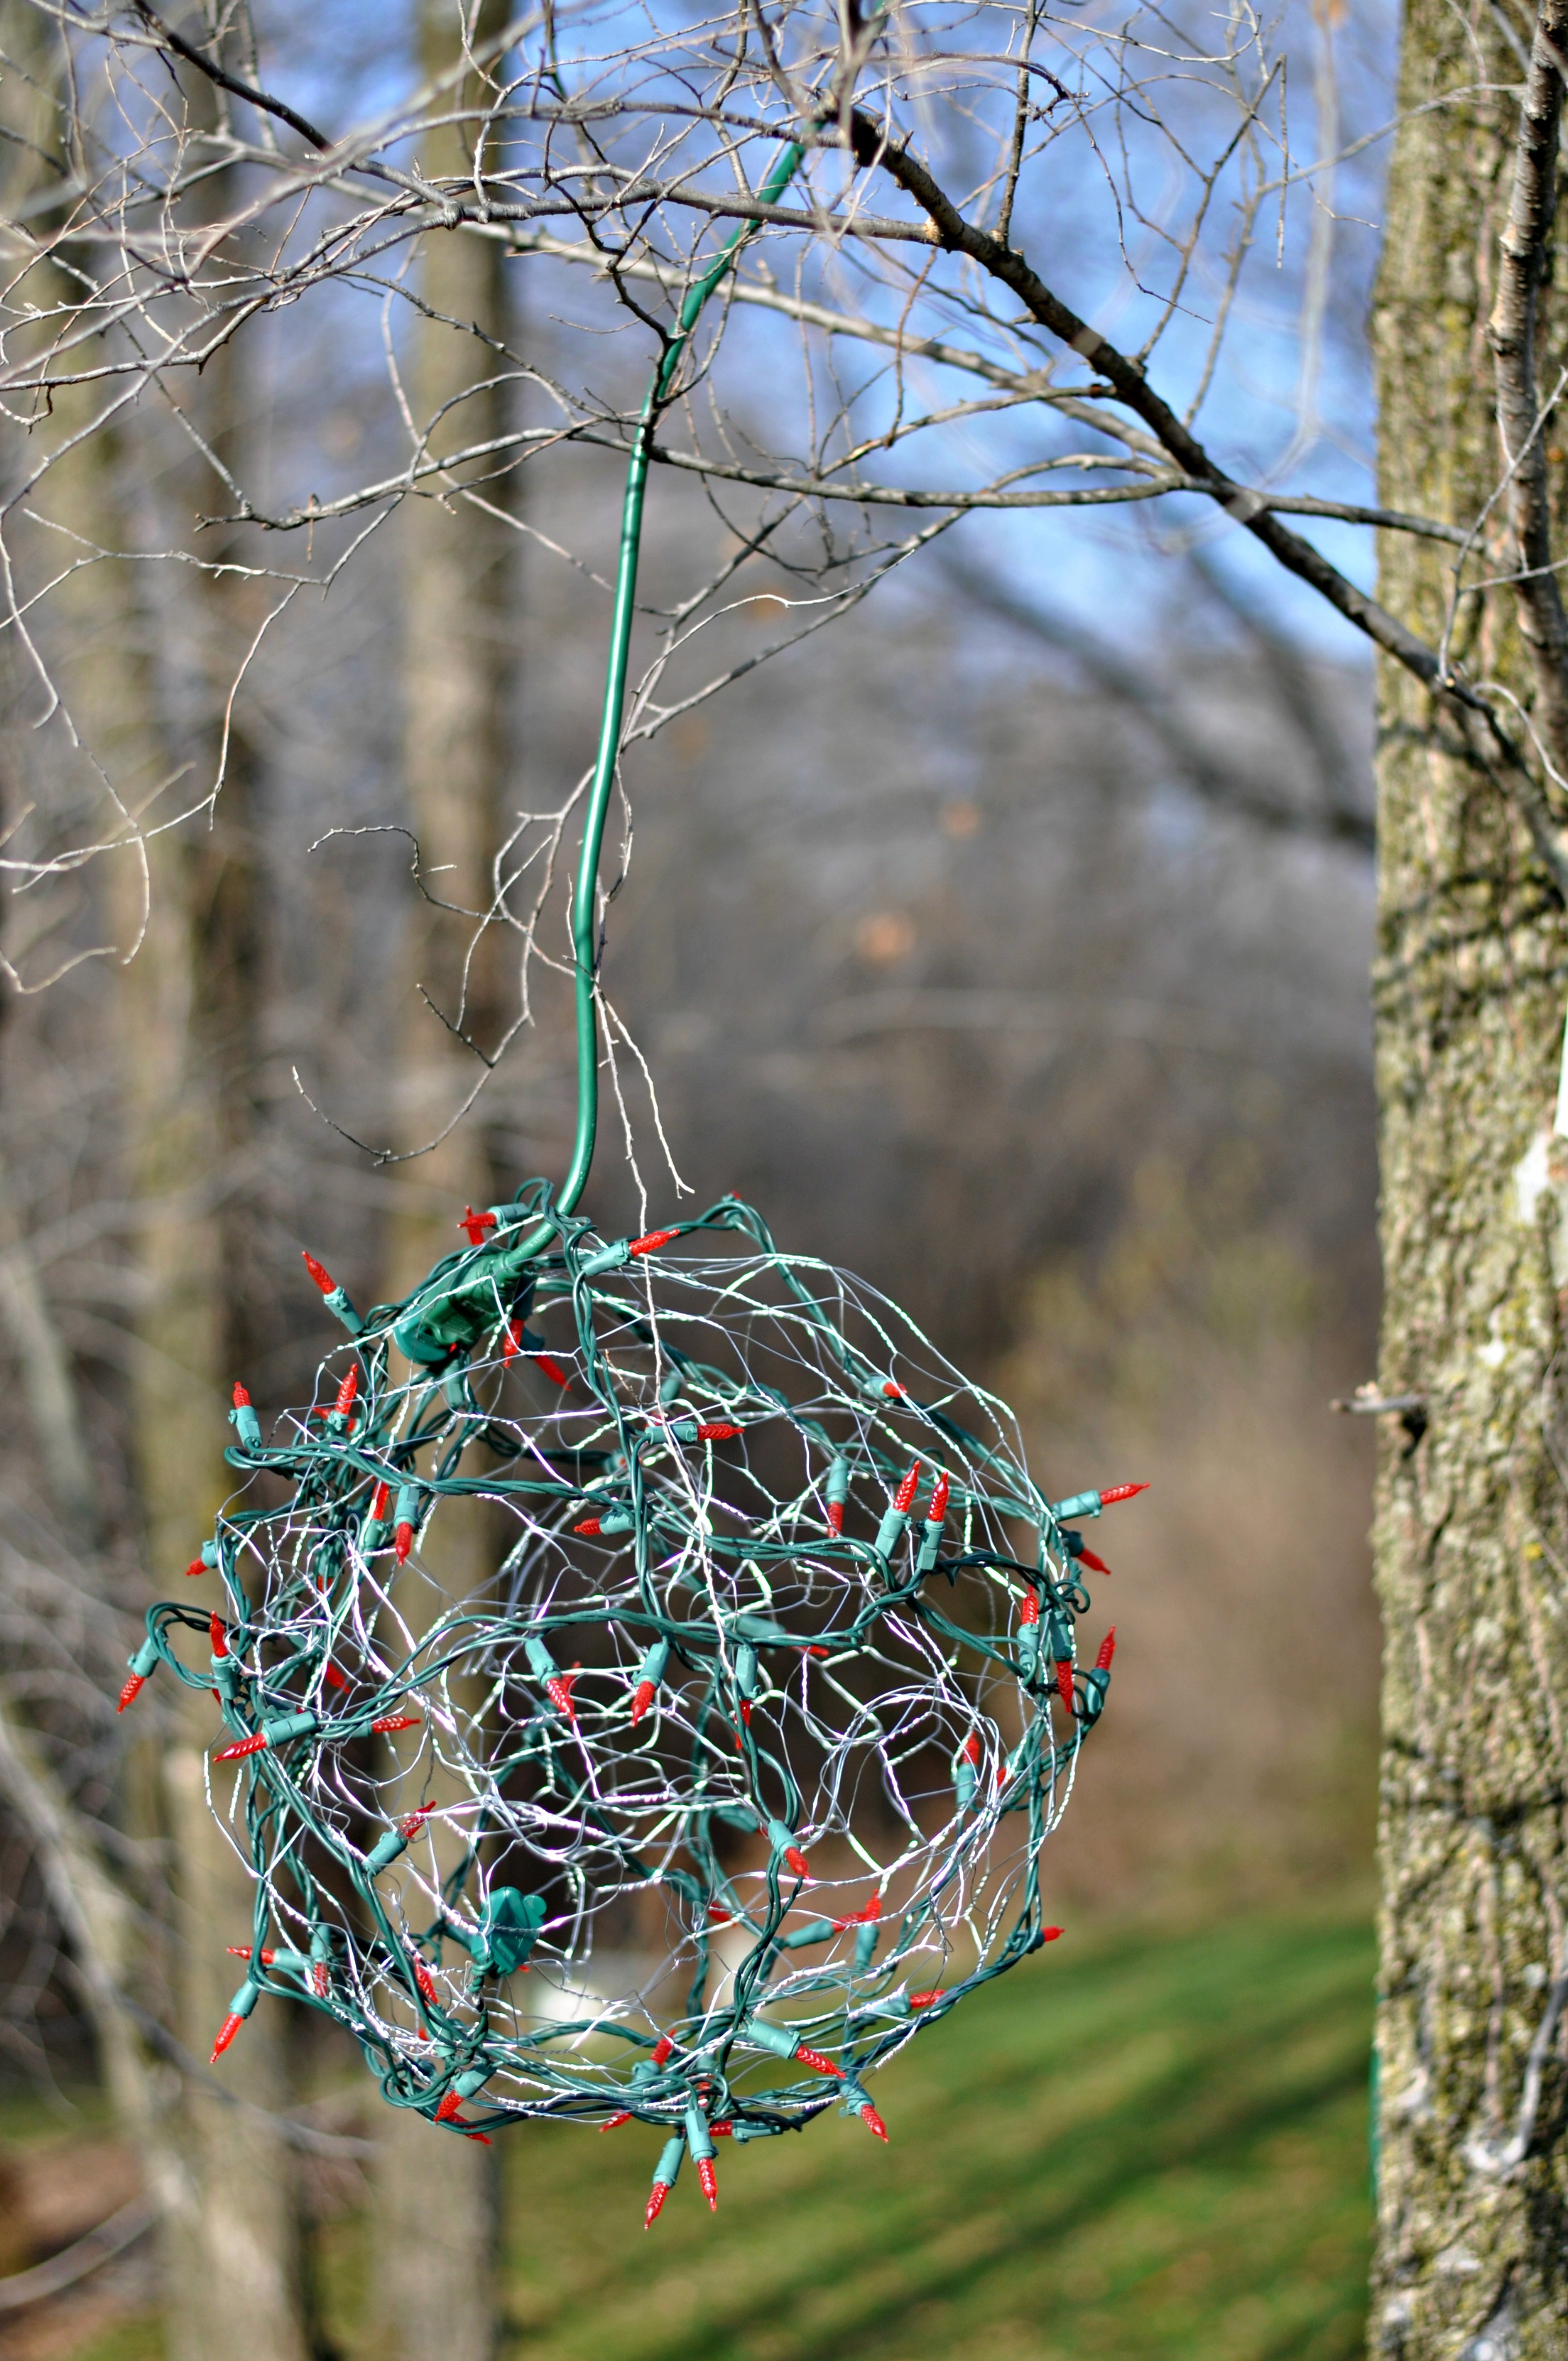 Outdoor hanging lighted ball